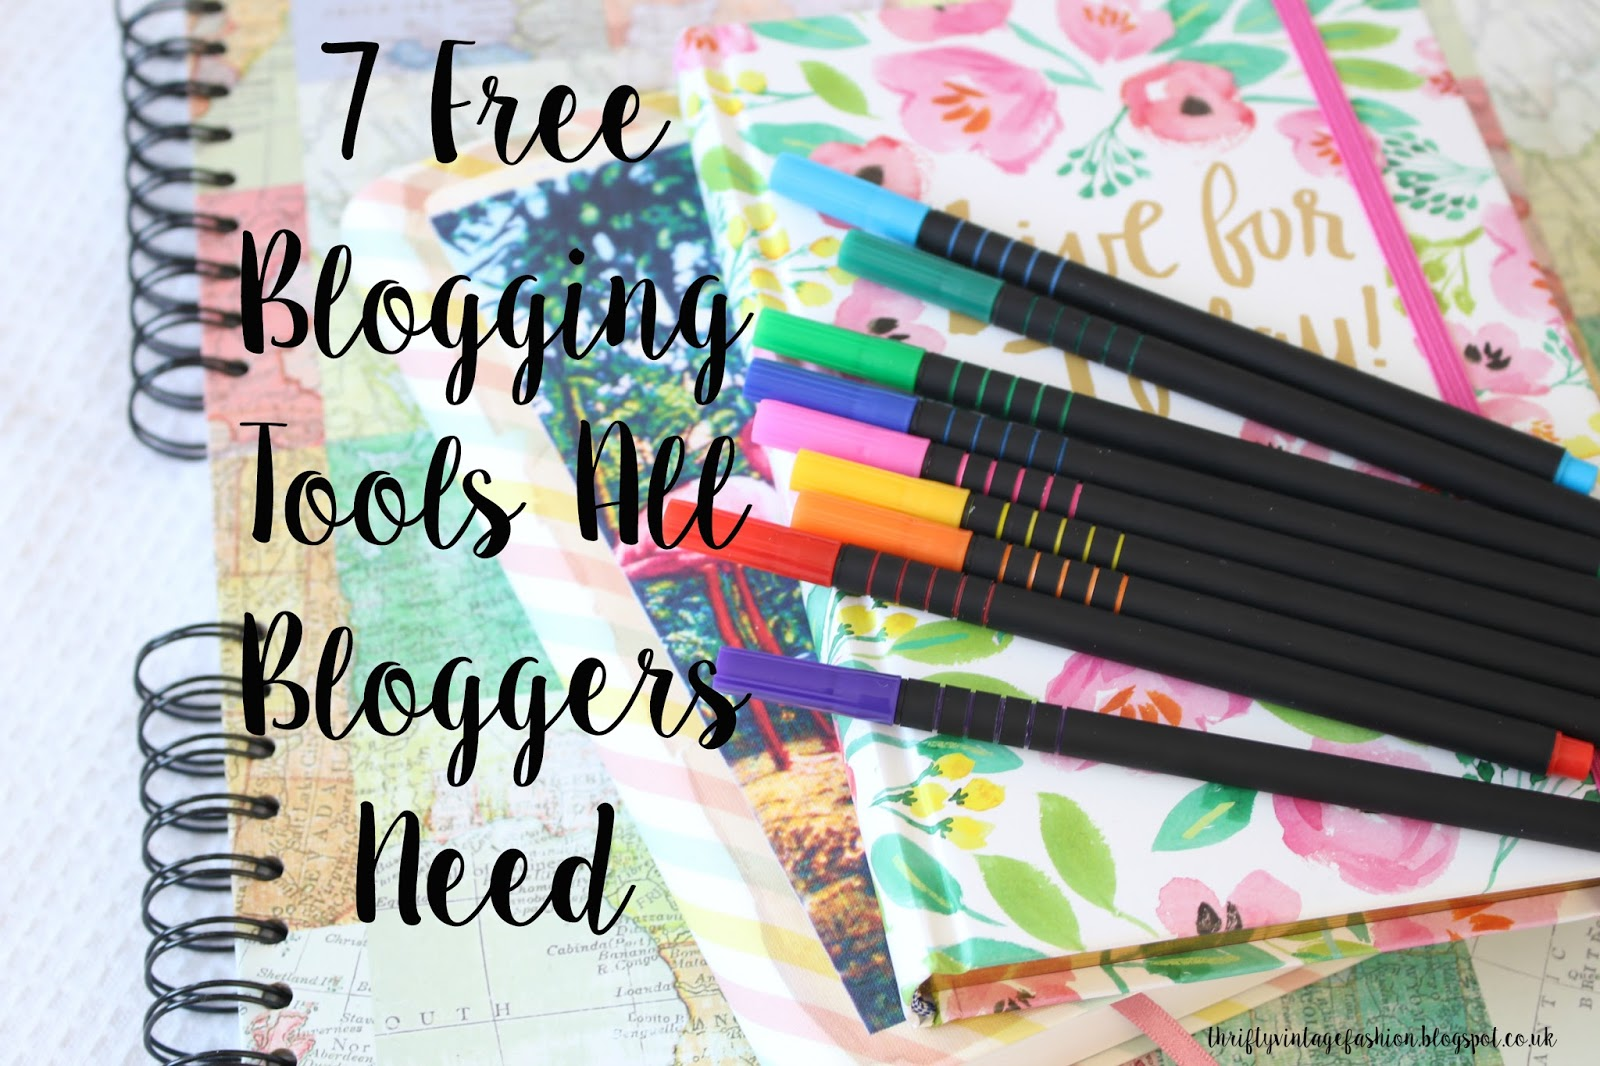 7 Free Blogging Tools All Bloggers Need Advice newbie lifestyle